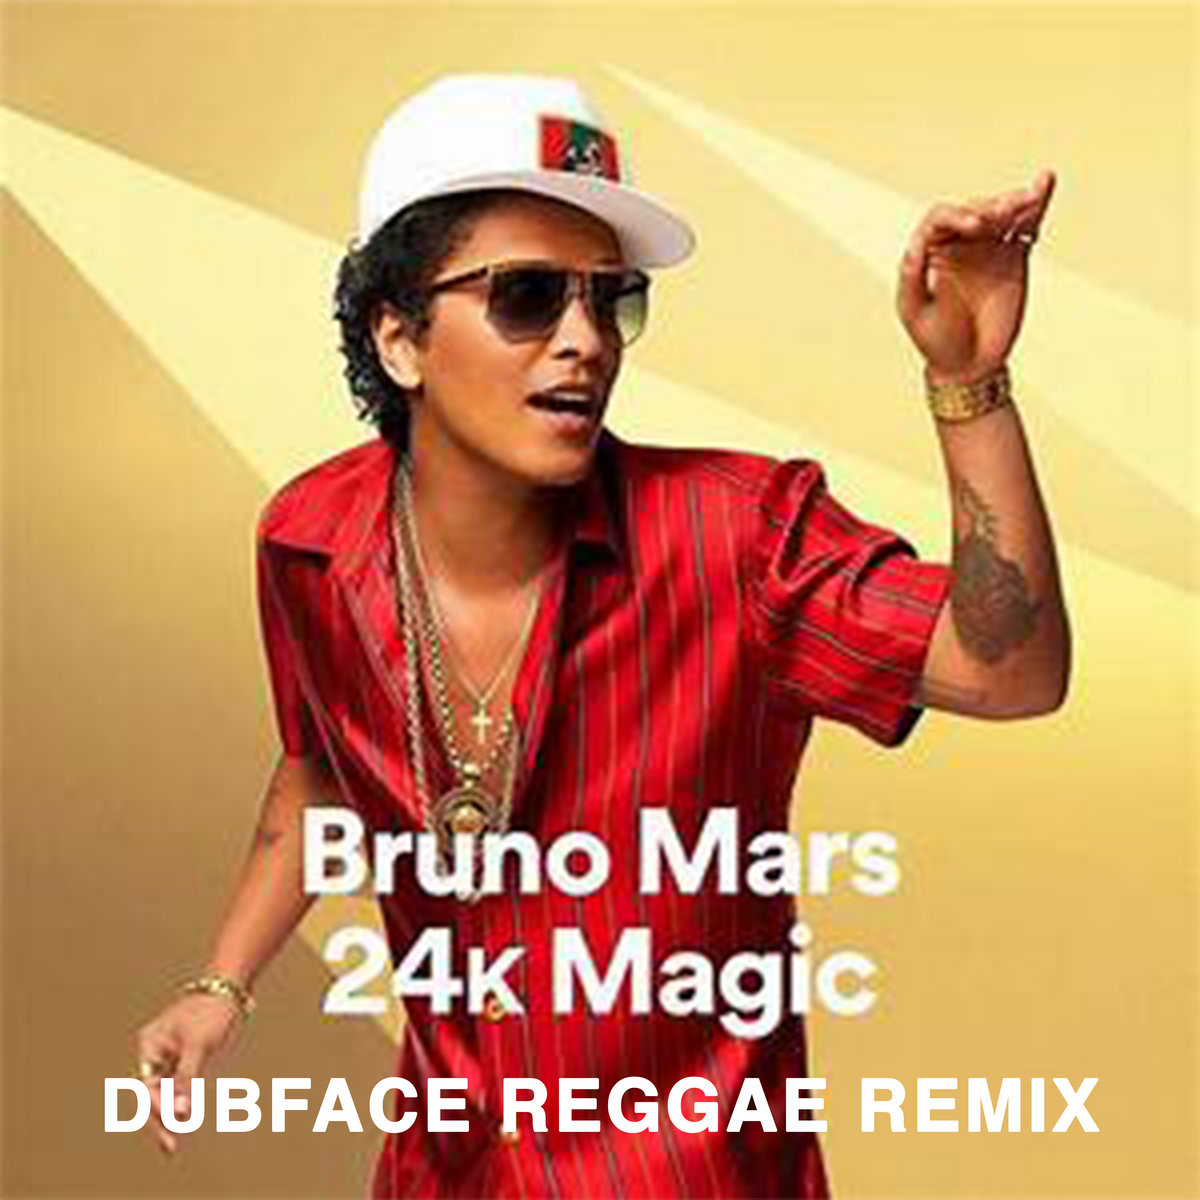 bruno mars 24k magic download free